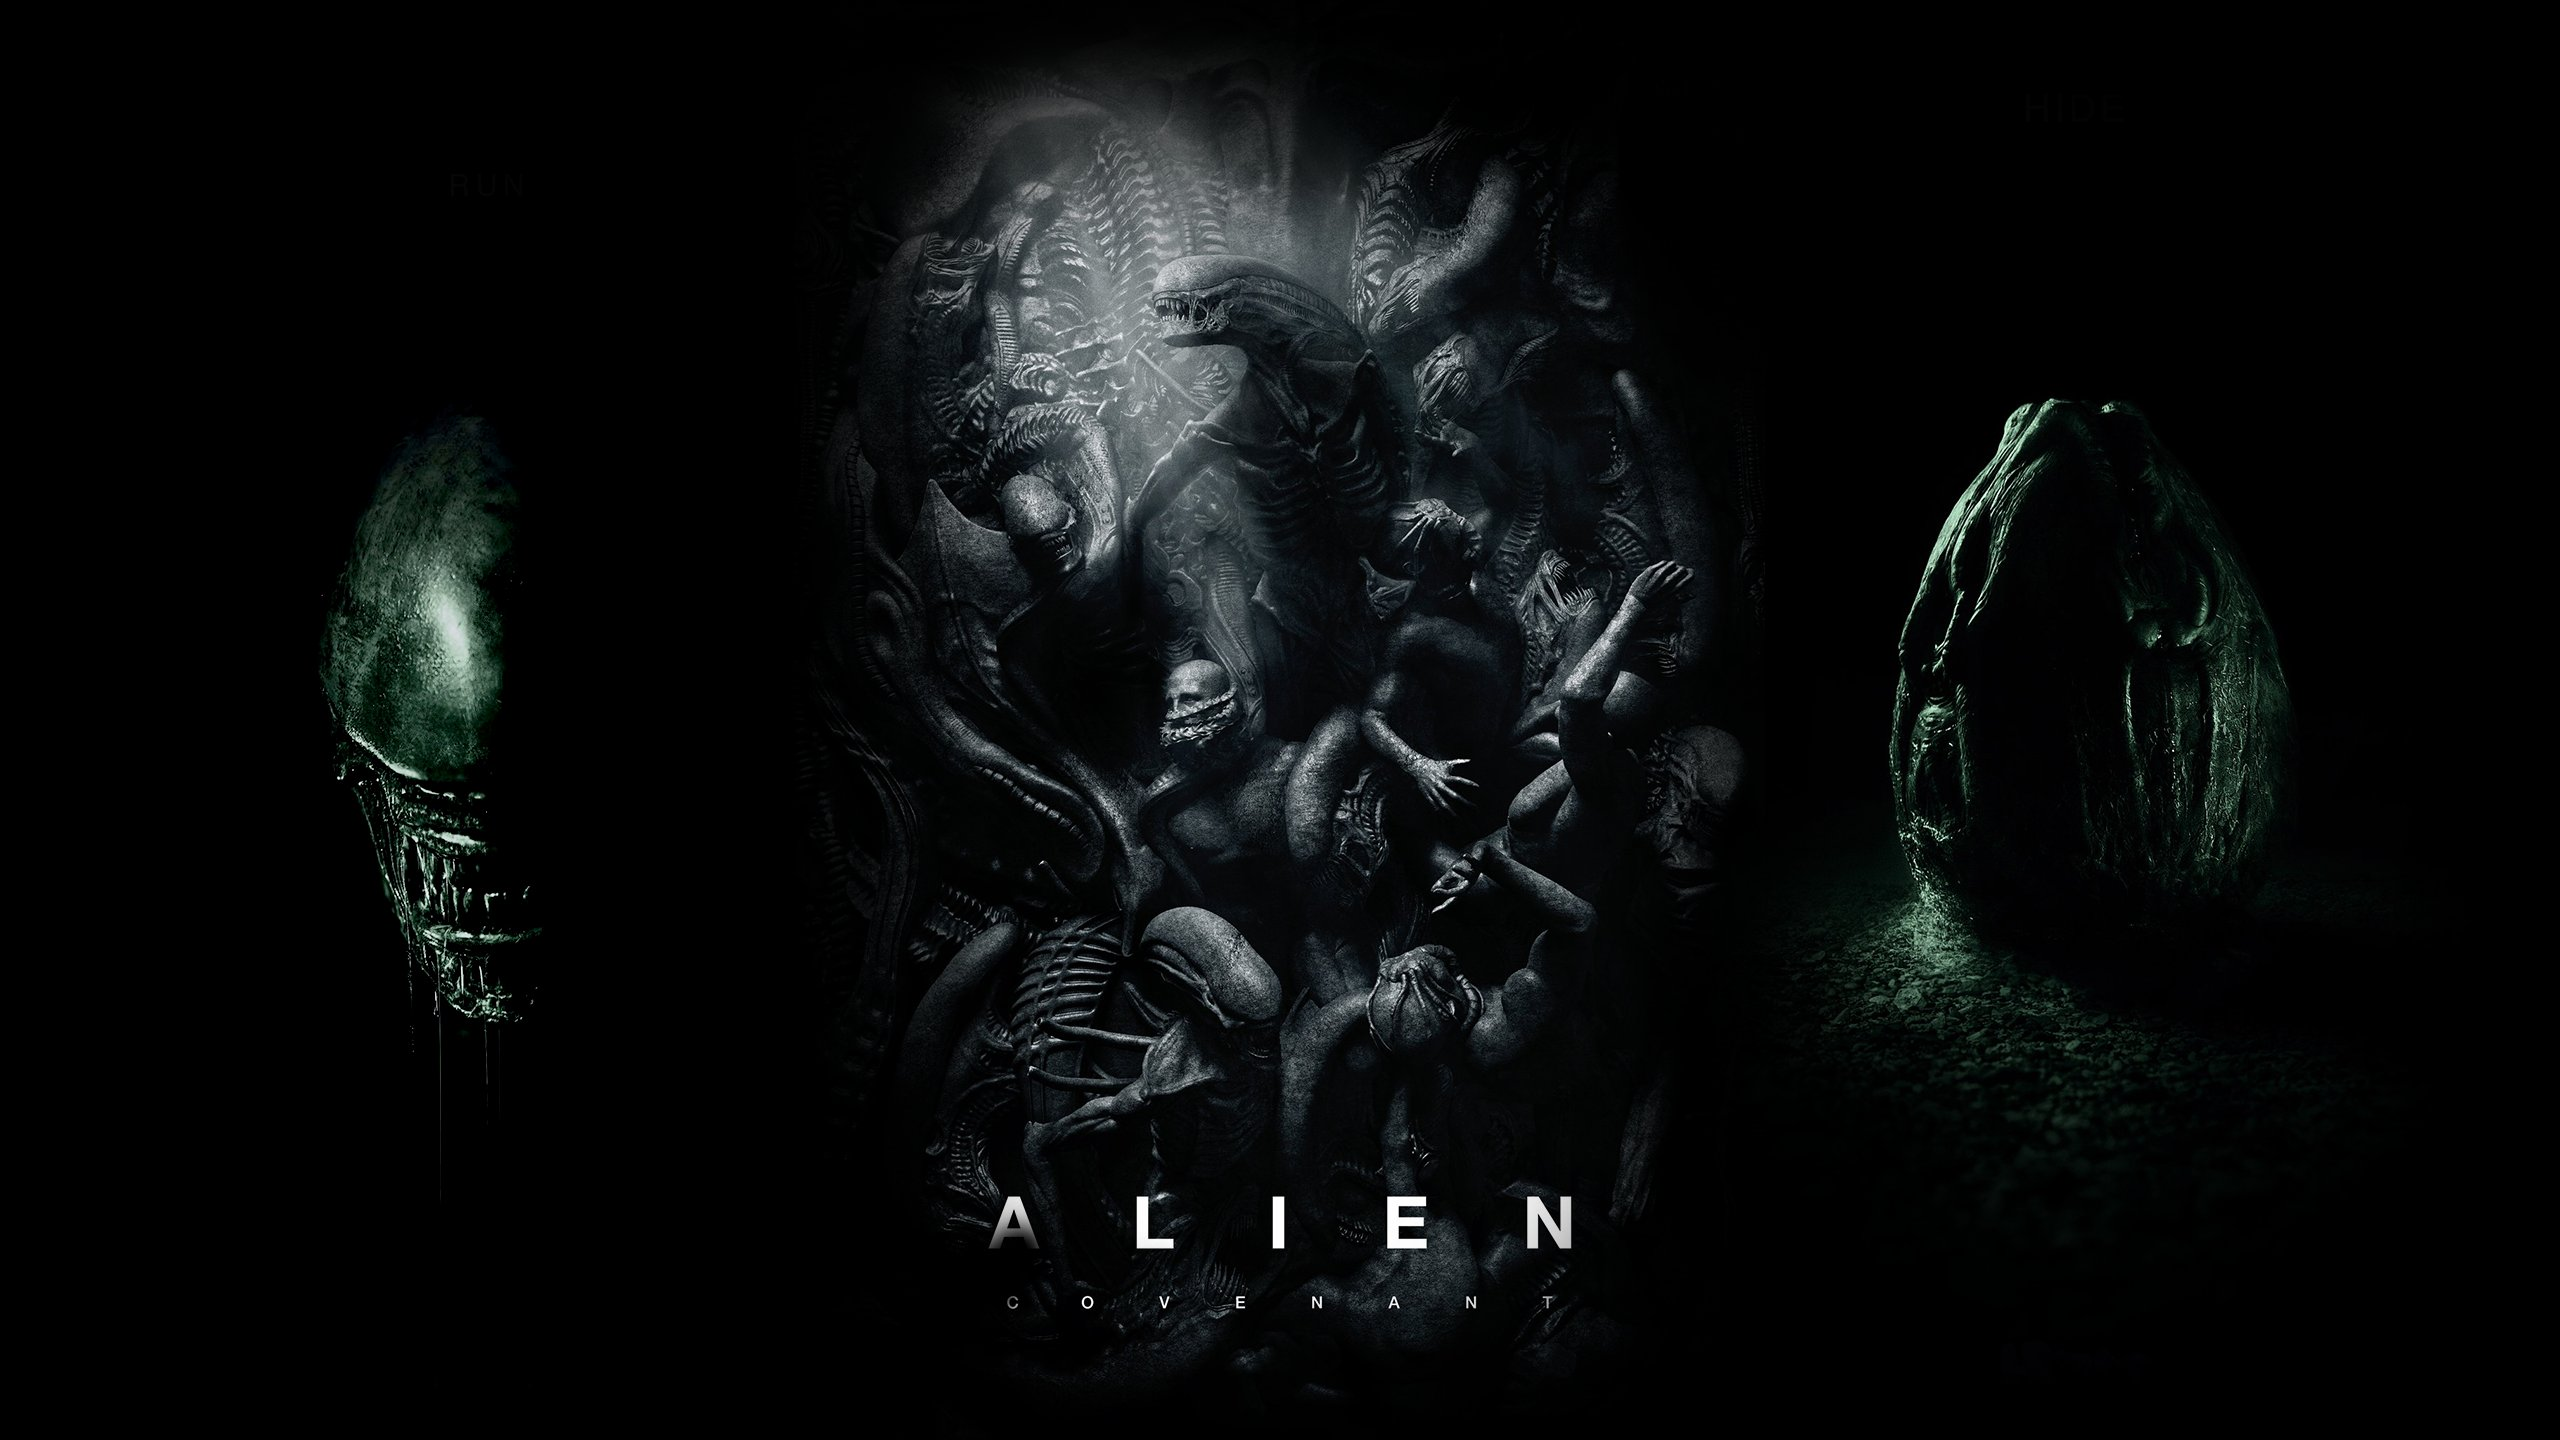 alien covenant run poster wallpaper-#24